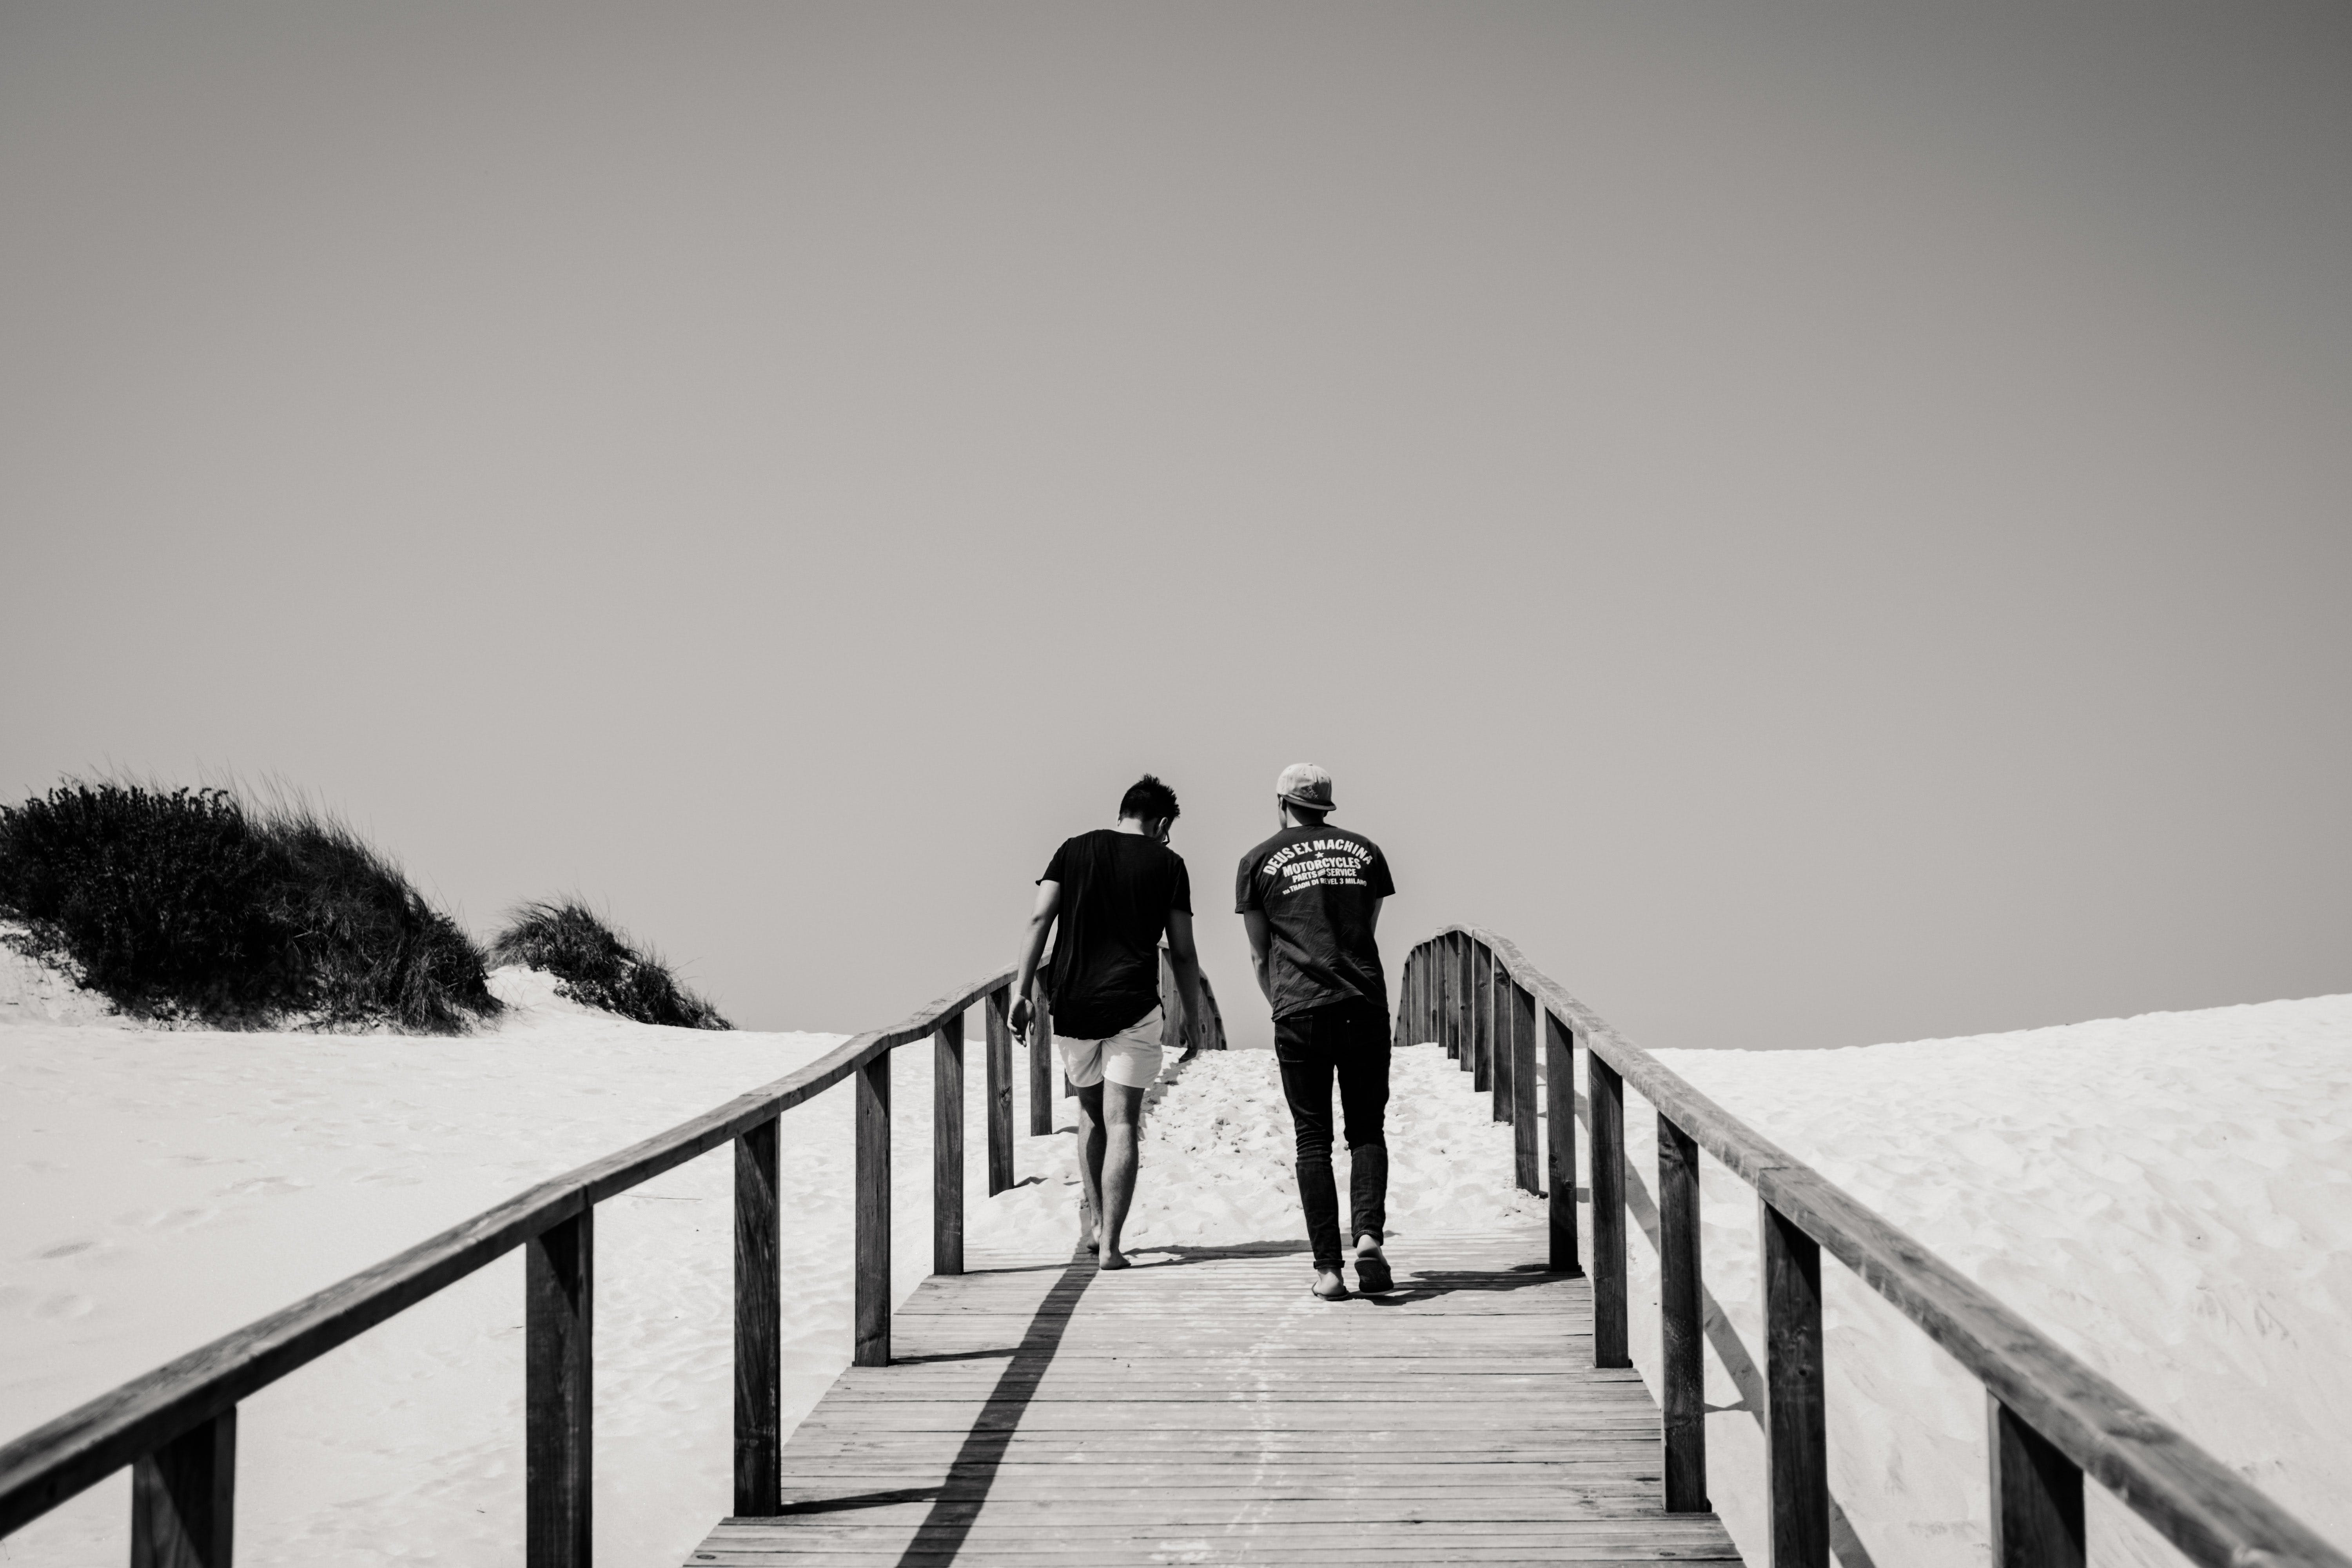 Grayscale Photography of Man and Woman Crossing Bridge